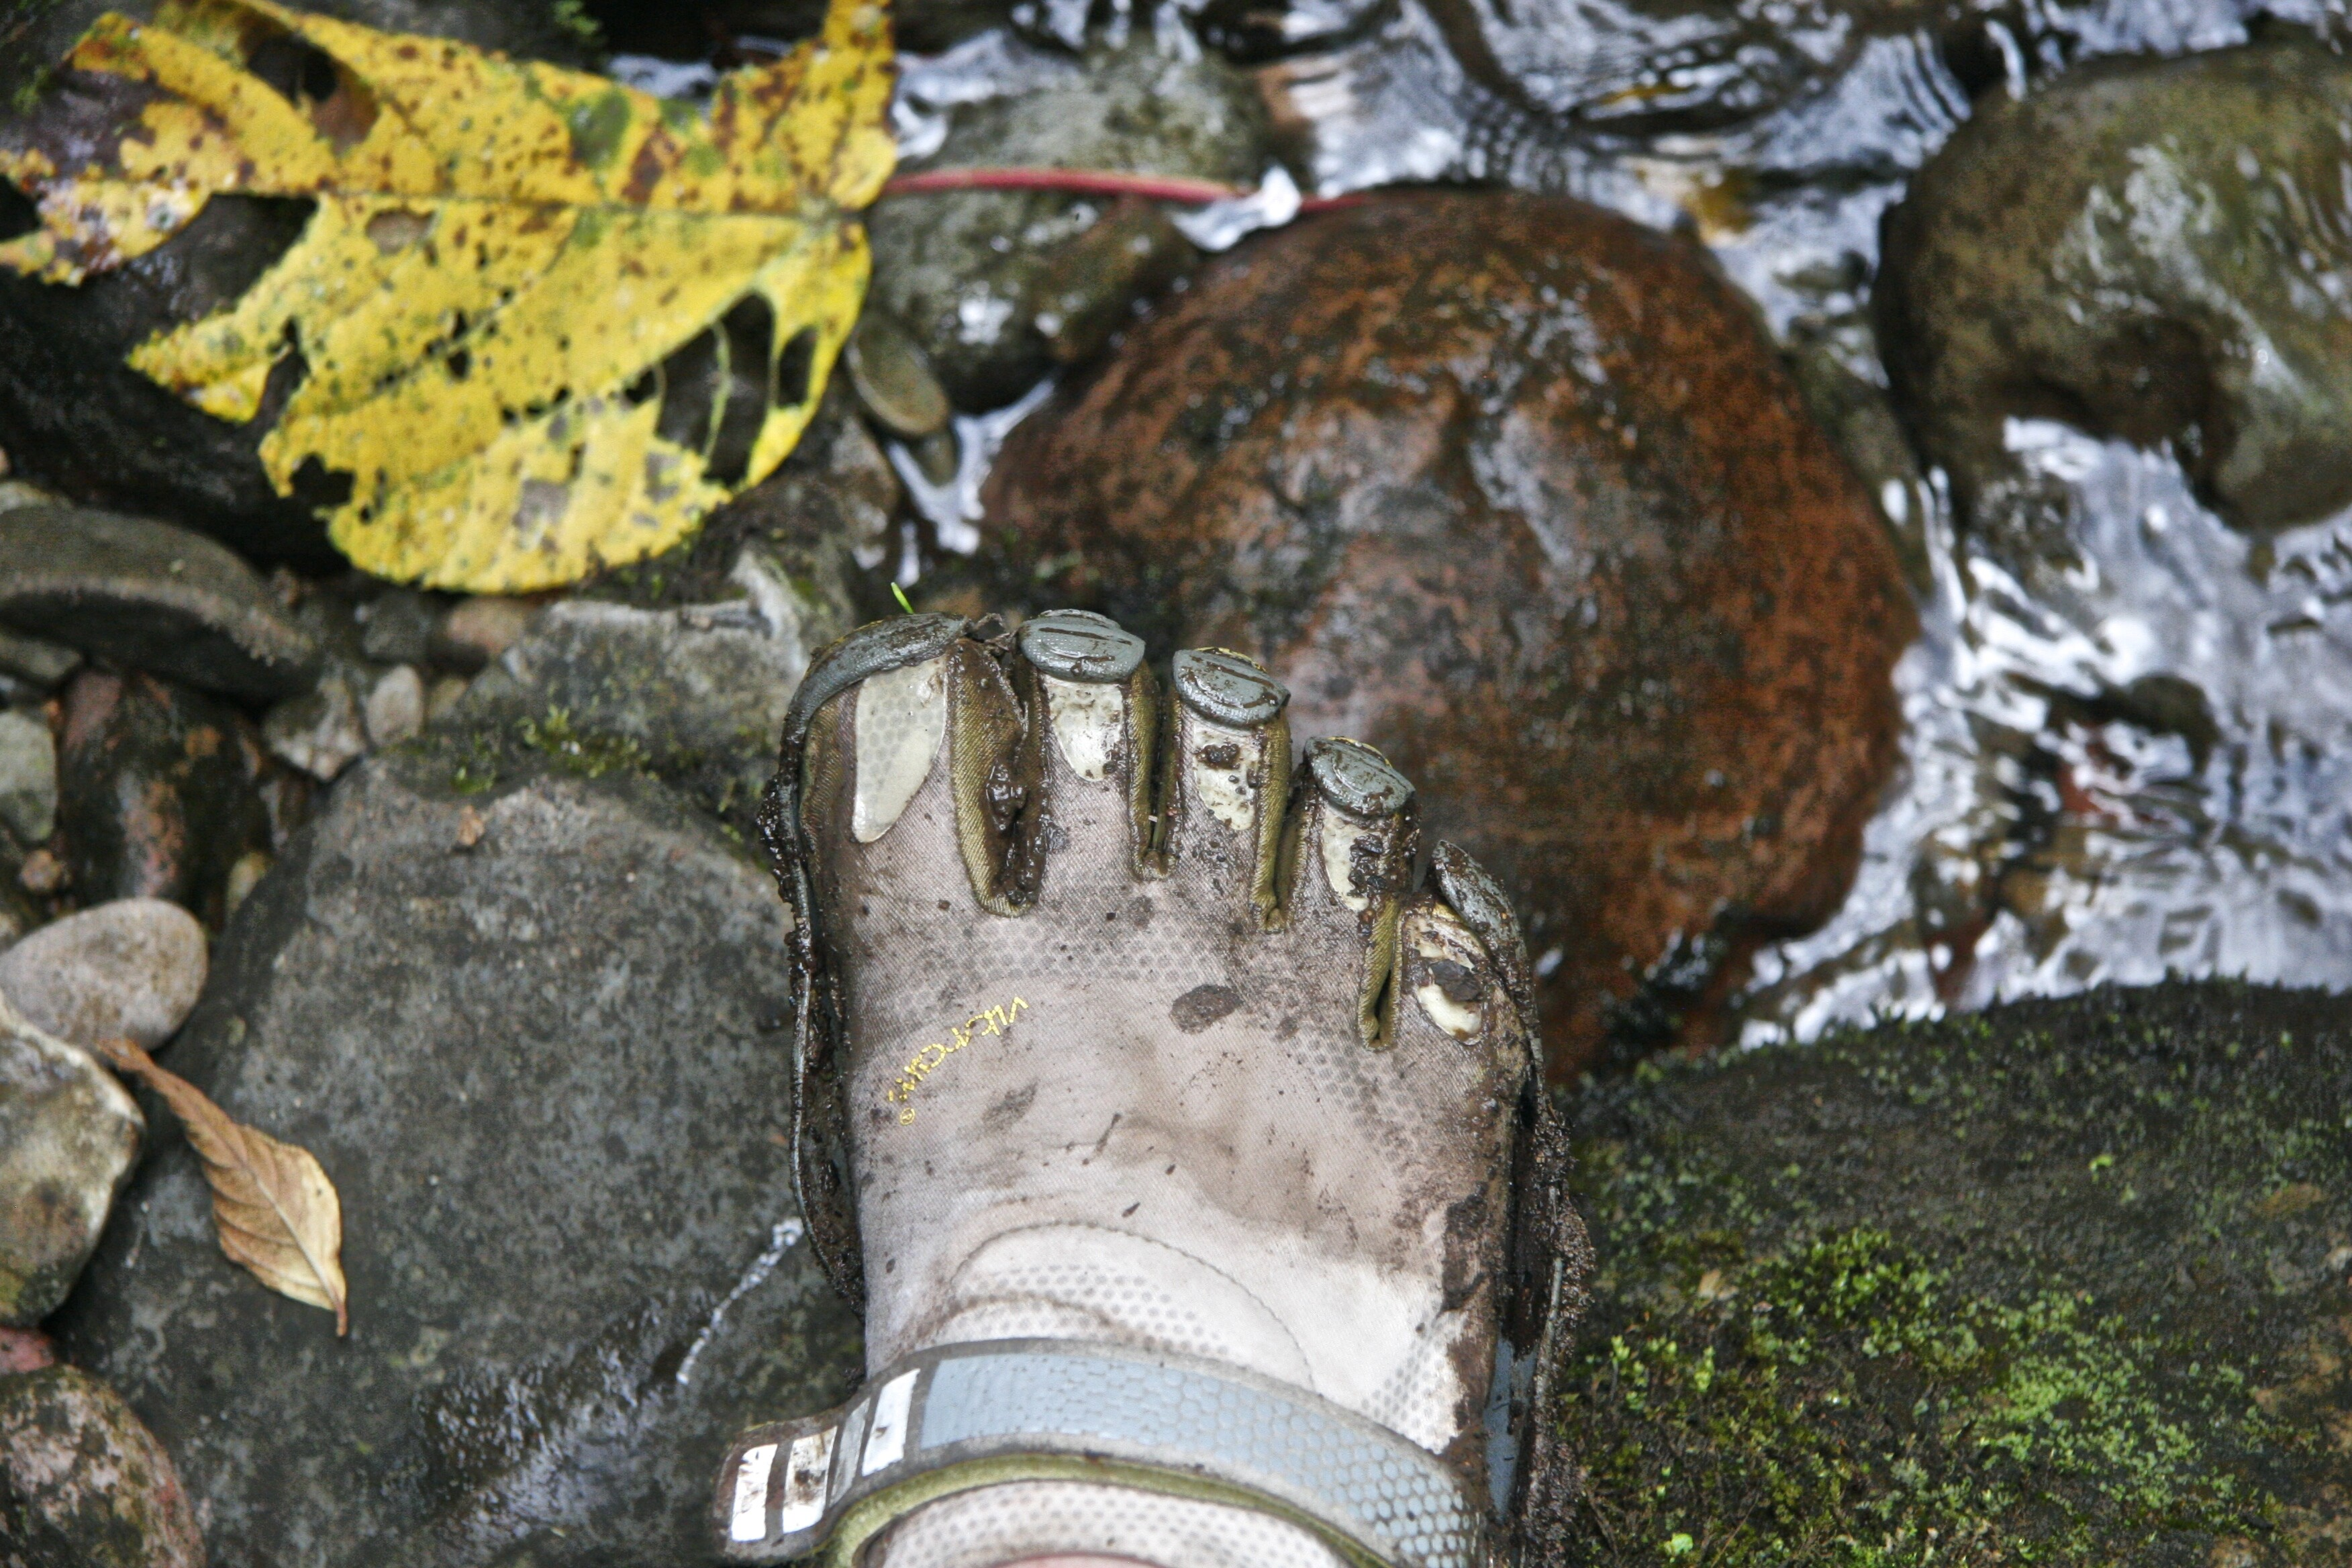 A muddy foot ready to step